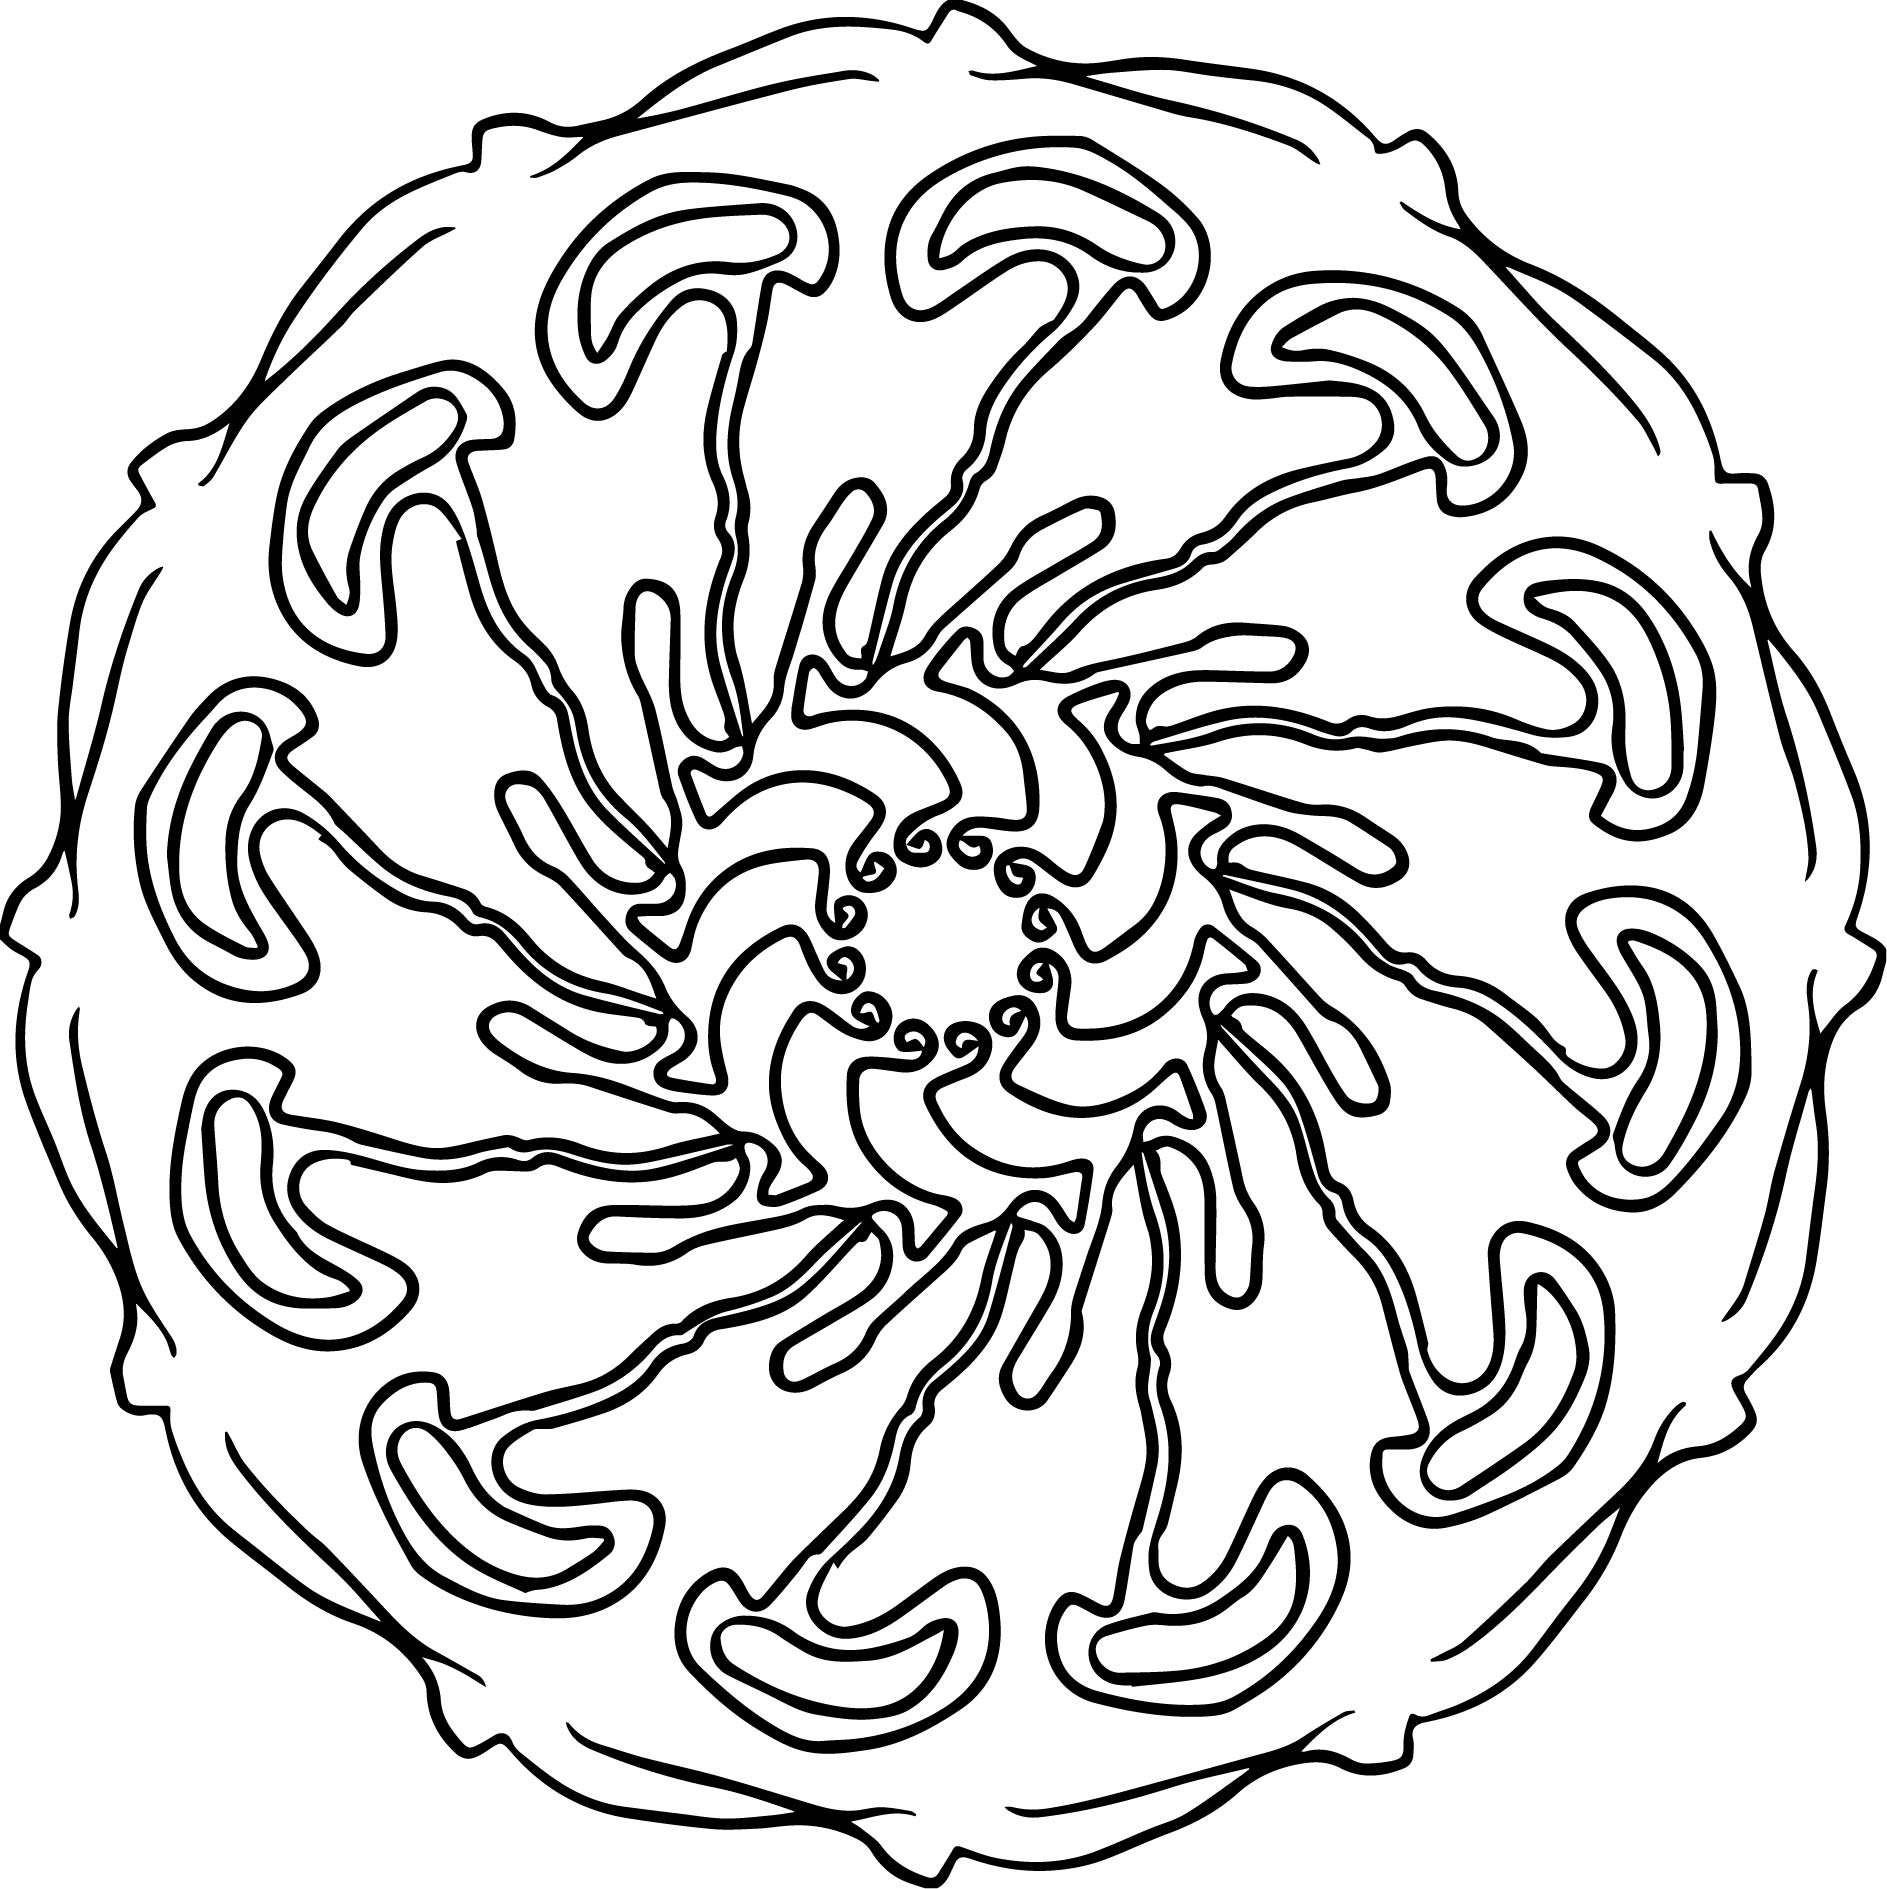 Cell Mandala Orniment Coloring Page